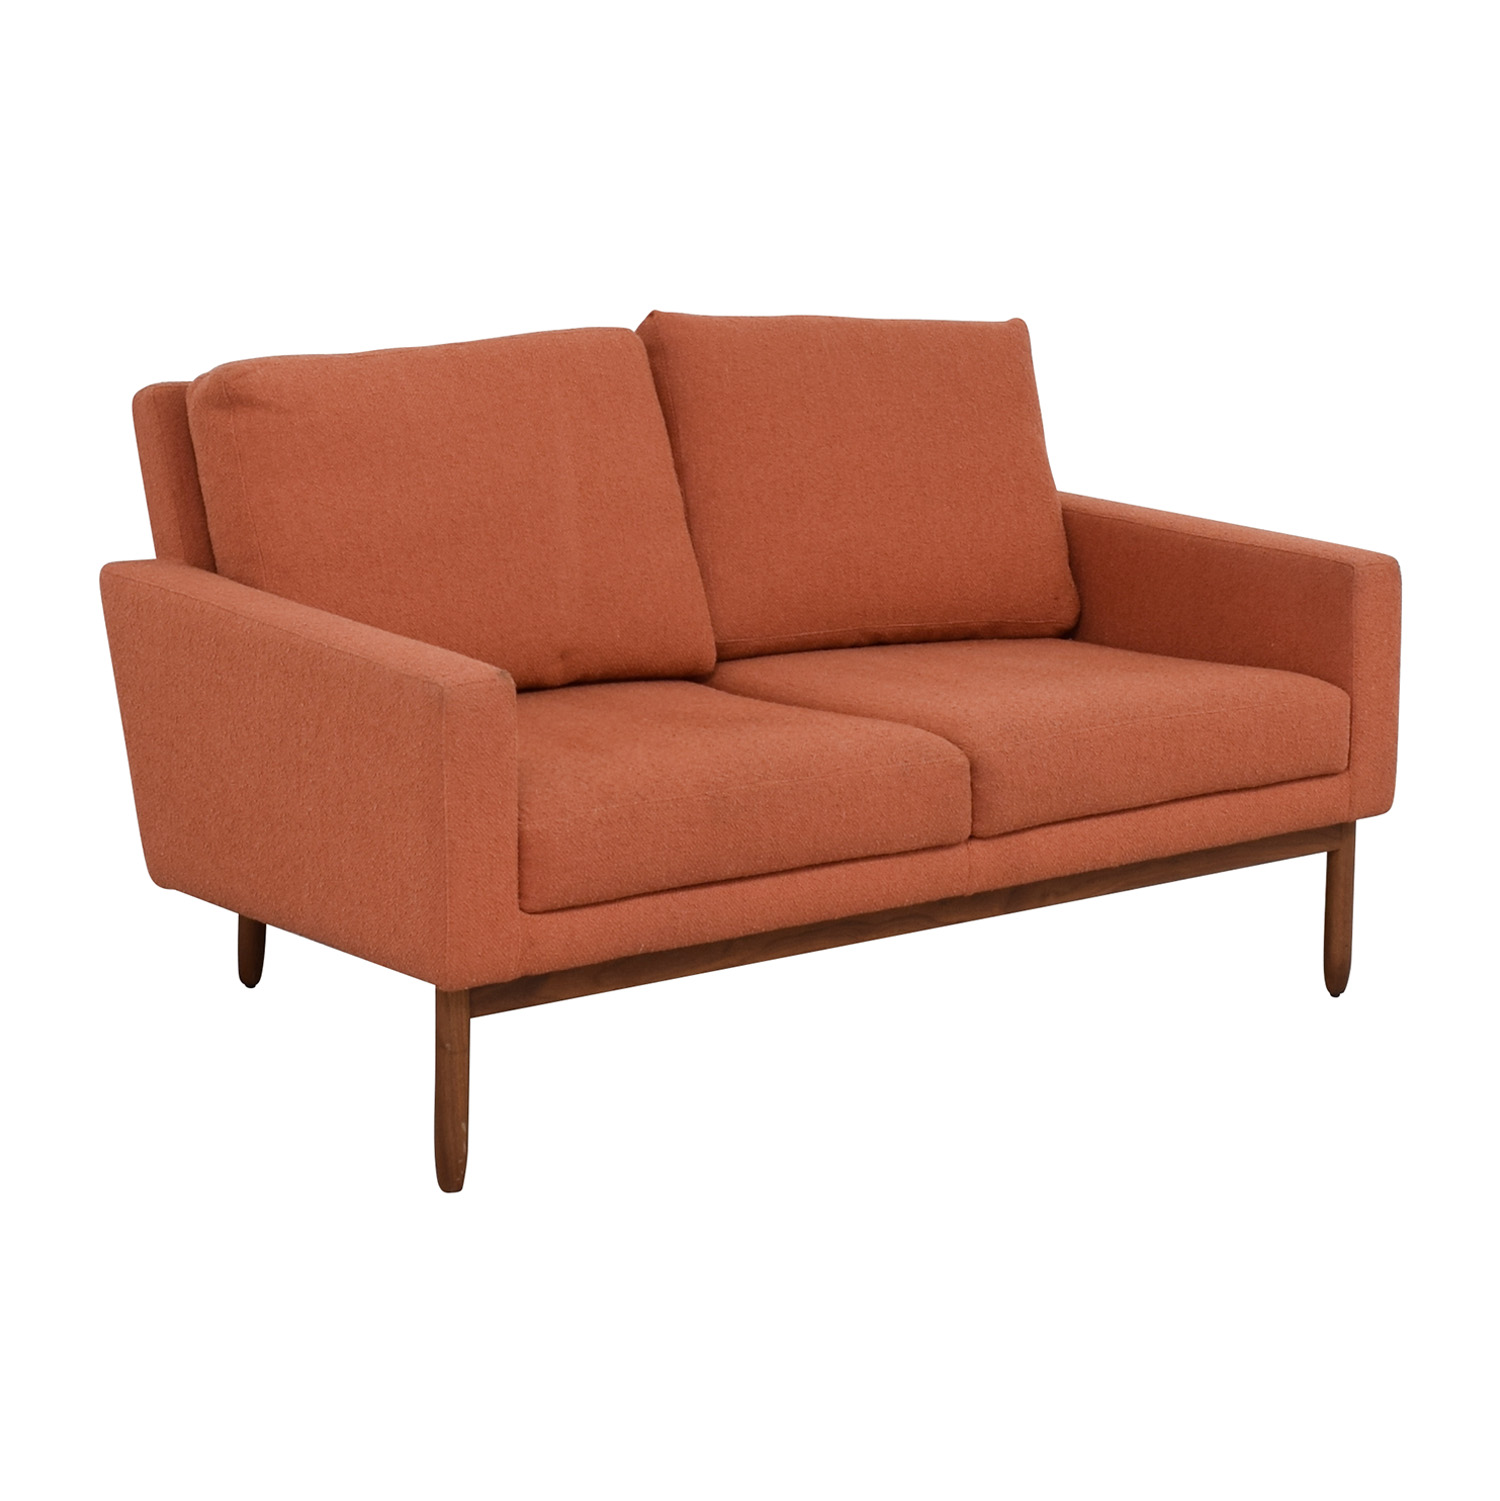 Design Within Reach Design Within Reach Raleigh Paprika Two-Cushion Sofa used